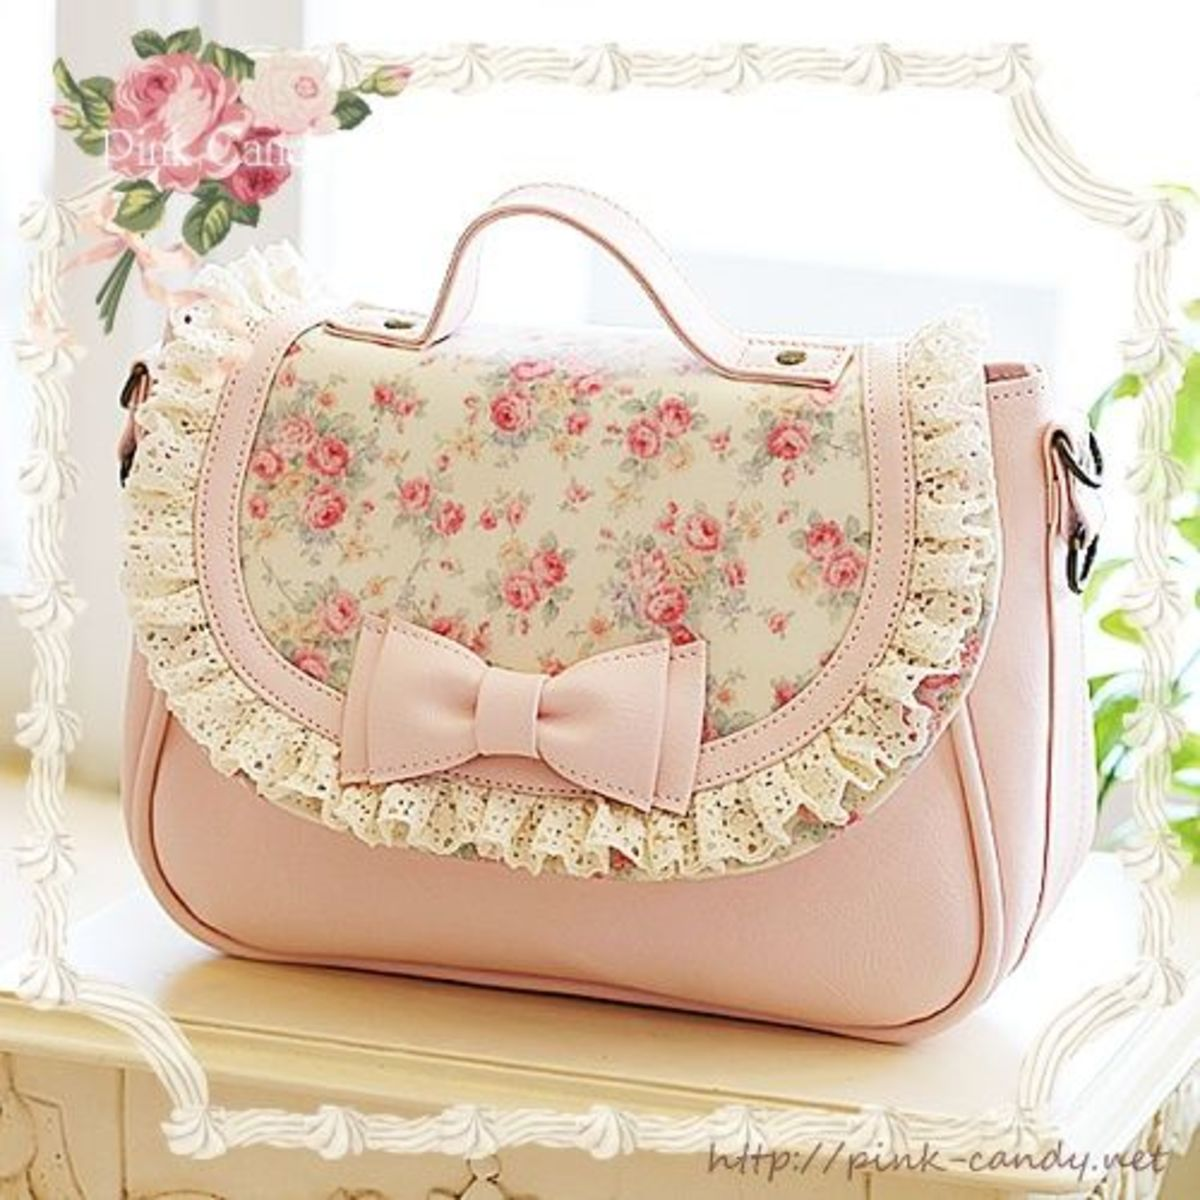 Very nice shabby chic pink floral and lace handbag